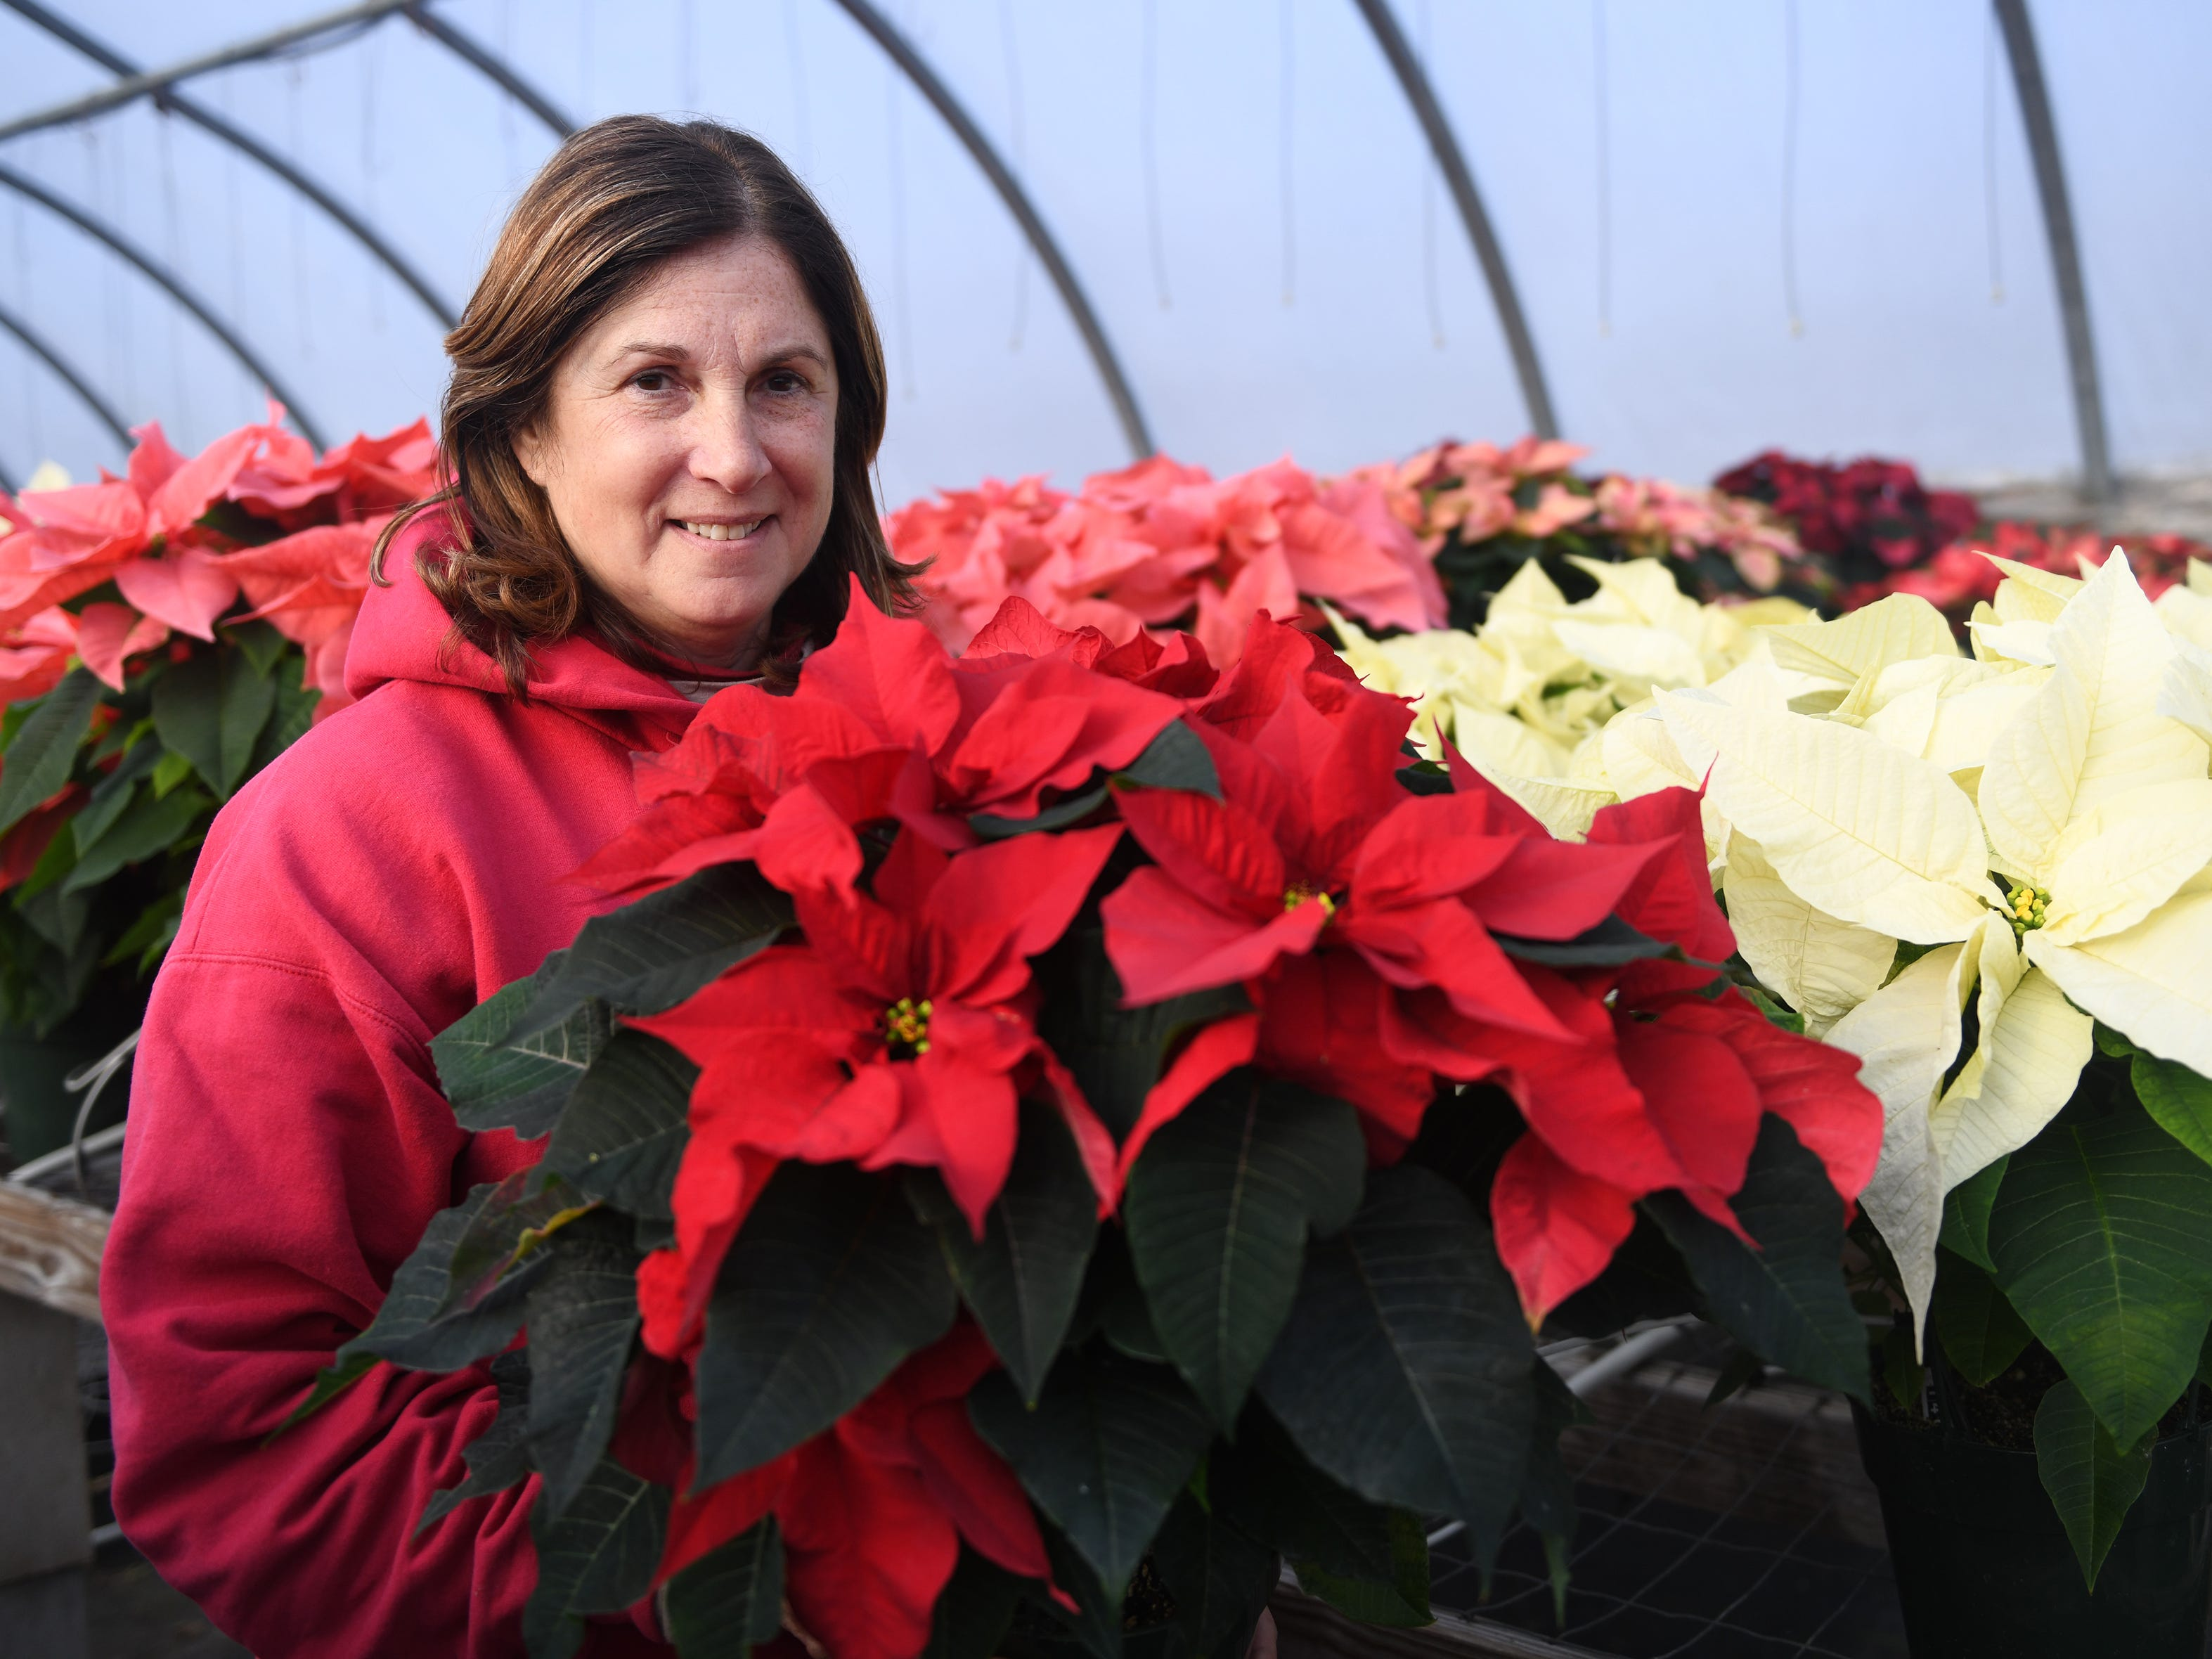 Patty Huffman holds a poinsettia that her farm produces. Huffman Farms starts to grow the plants in July so they are ready for the Christmas season. Poinsettias are available in several different colors and sizes at 296 S. Blue Bell Road in Vineland.